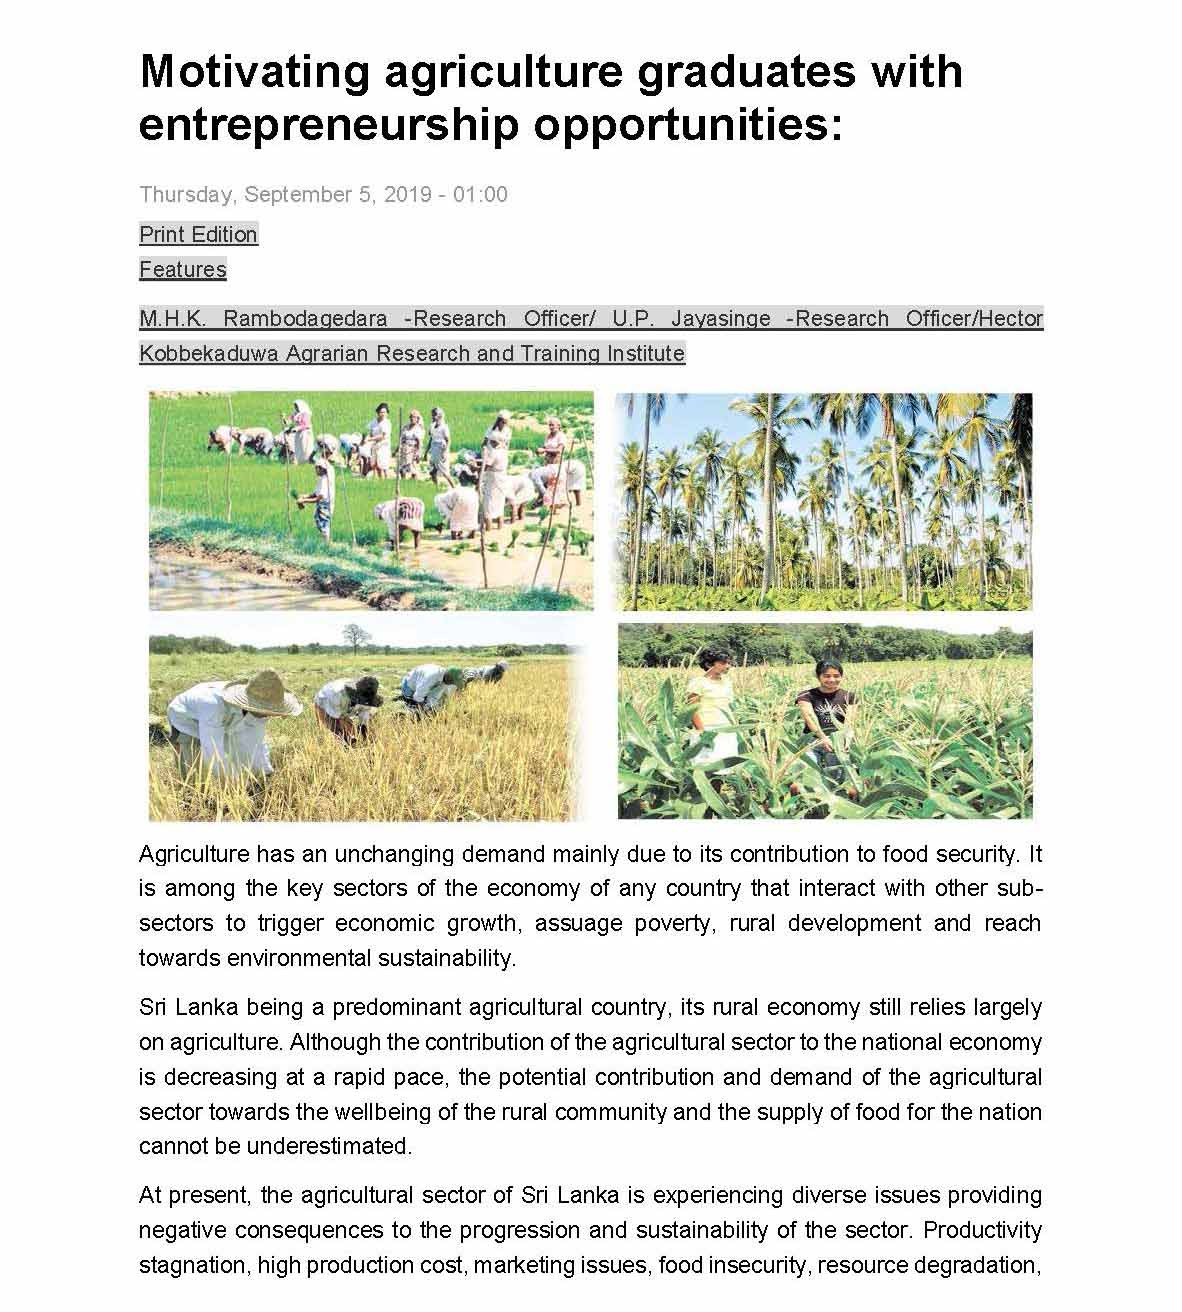 Motivating_agriculture_graduates_with_entrepreneurship_opportunities_Page_1.jpg